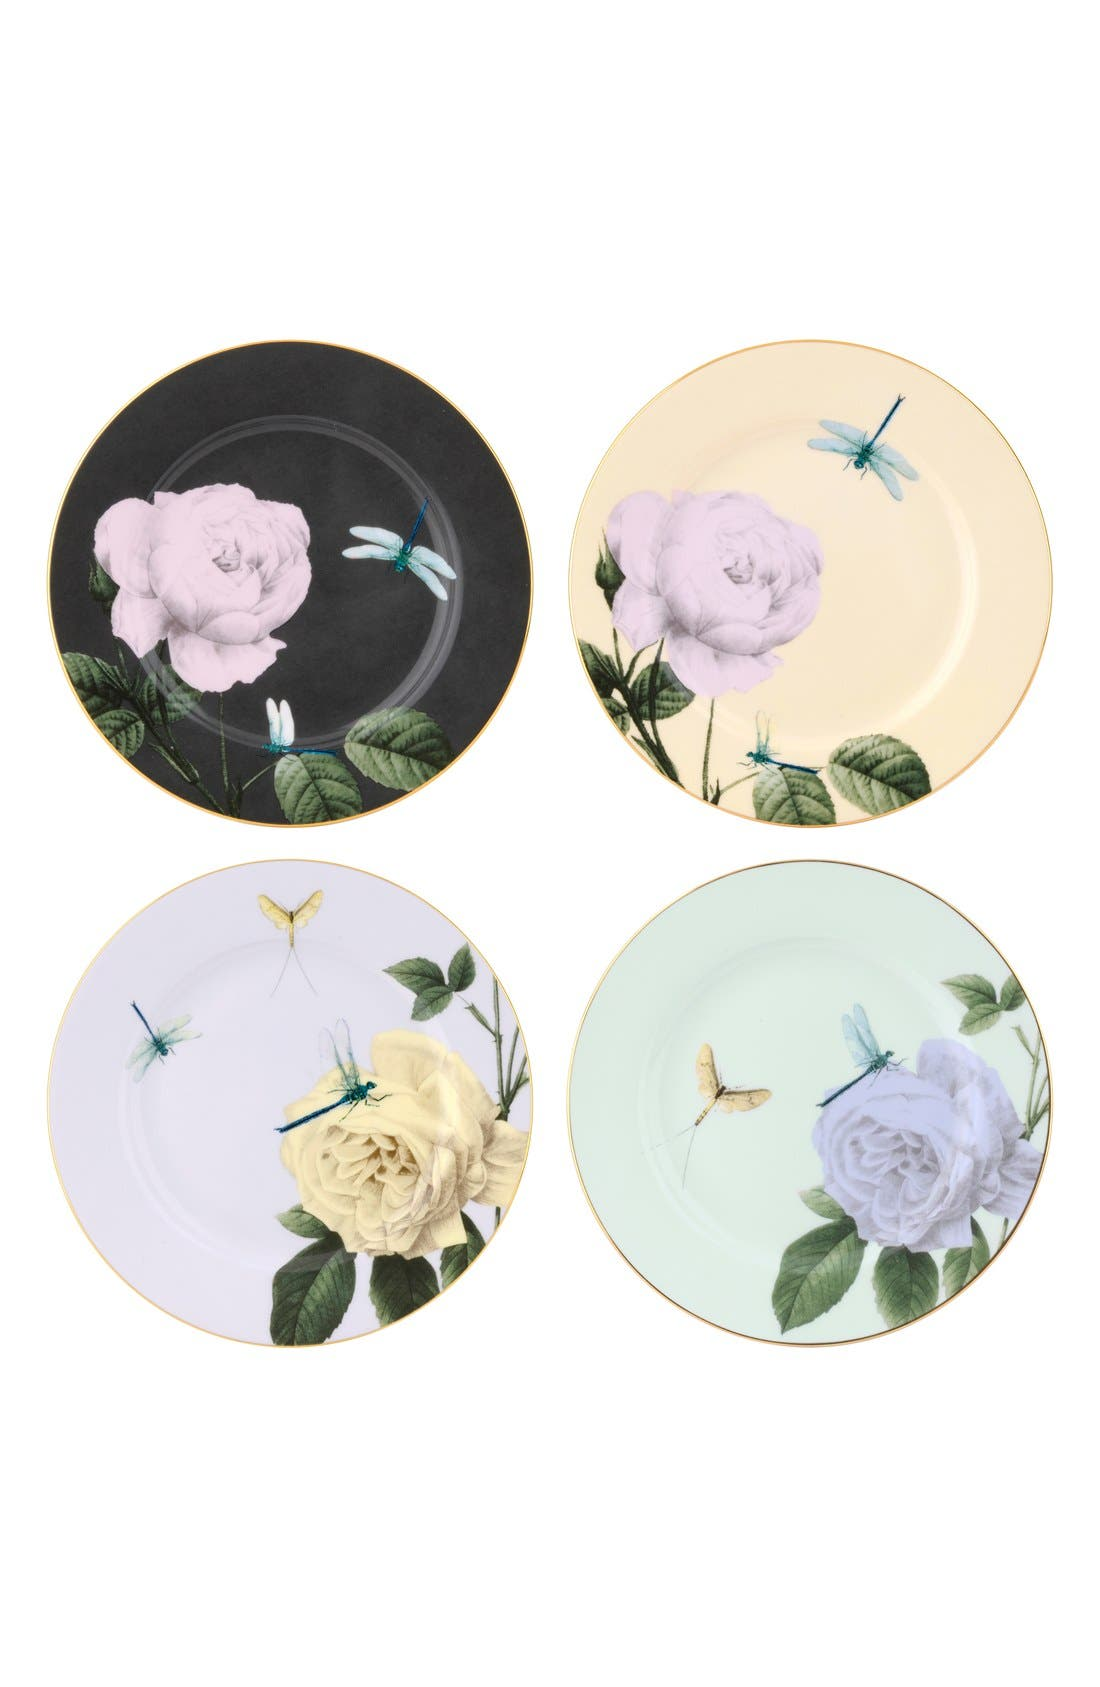 Main Image - Portmeirion x Ted Baker 'Rosie Lee' Bone China Salad Plates (Set of 4)